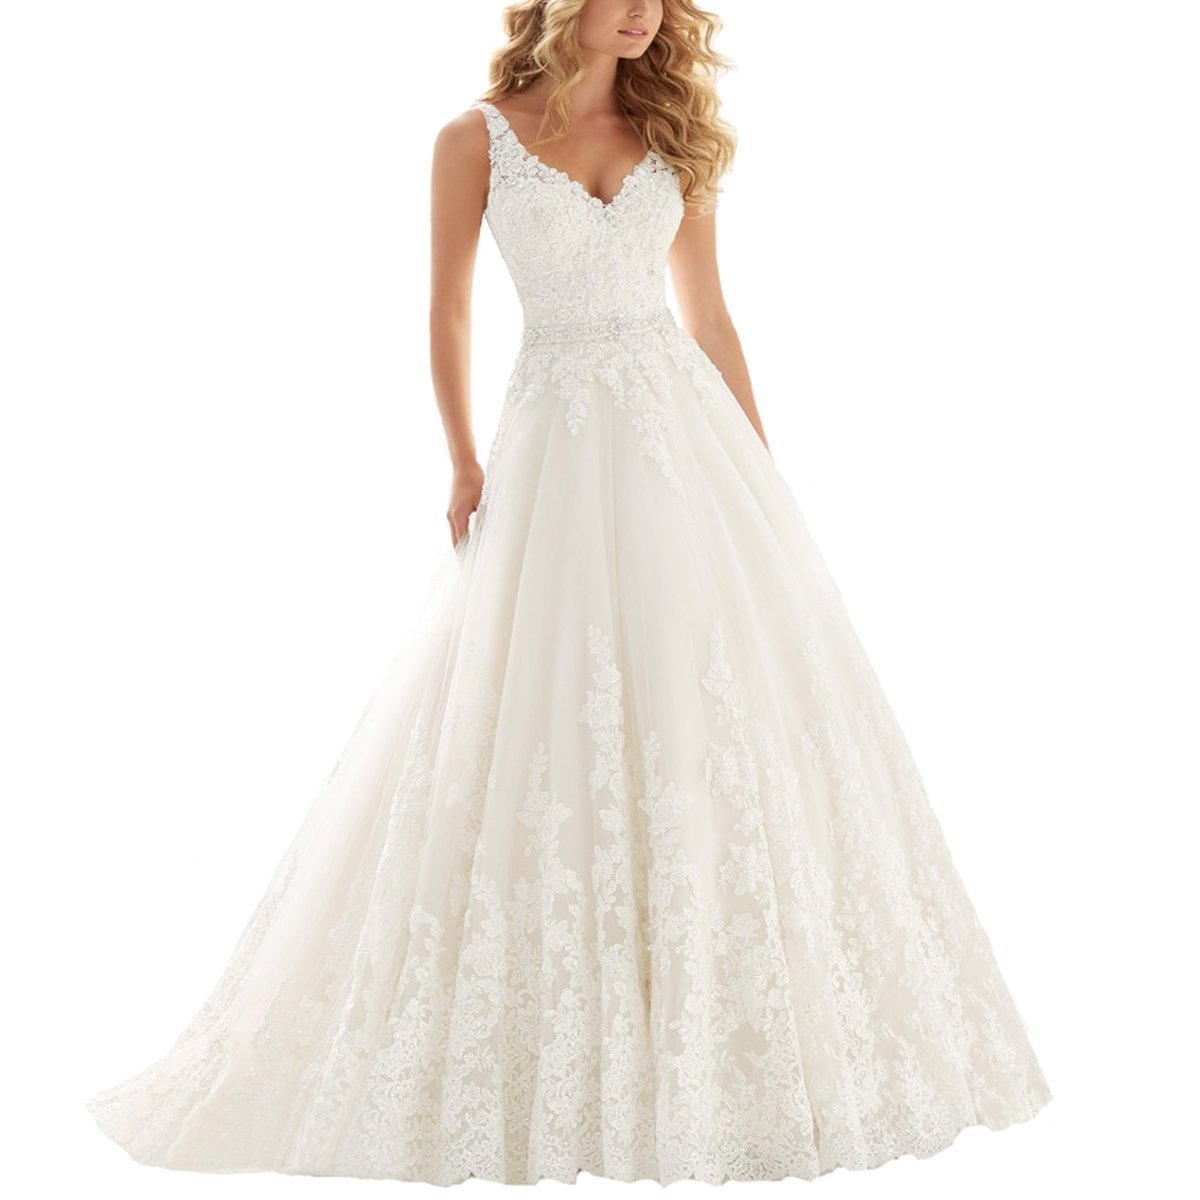 Owman Lace V Neck Wedding Dress Beaded Bridal Dresses Appliques